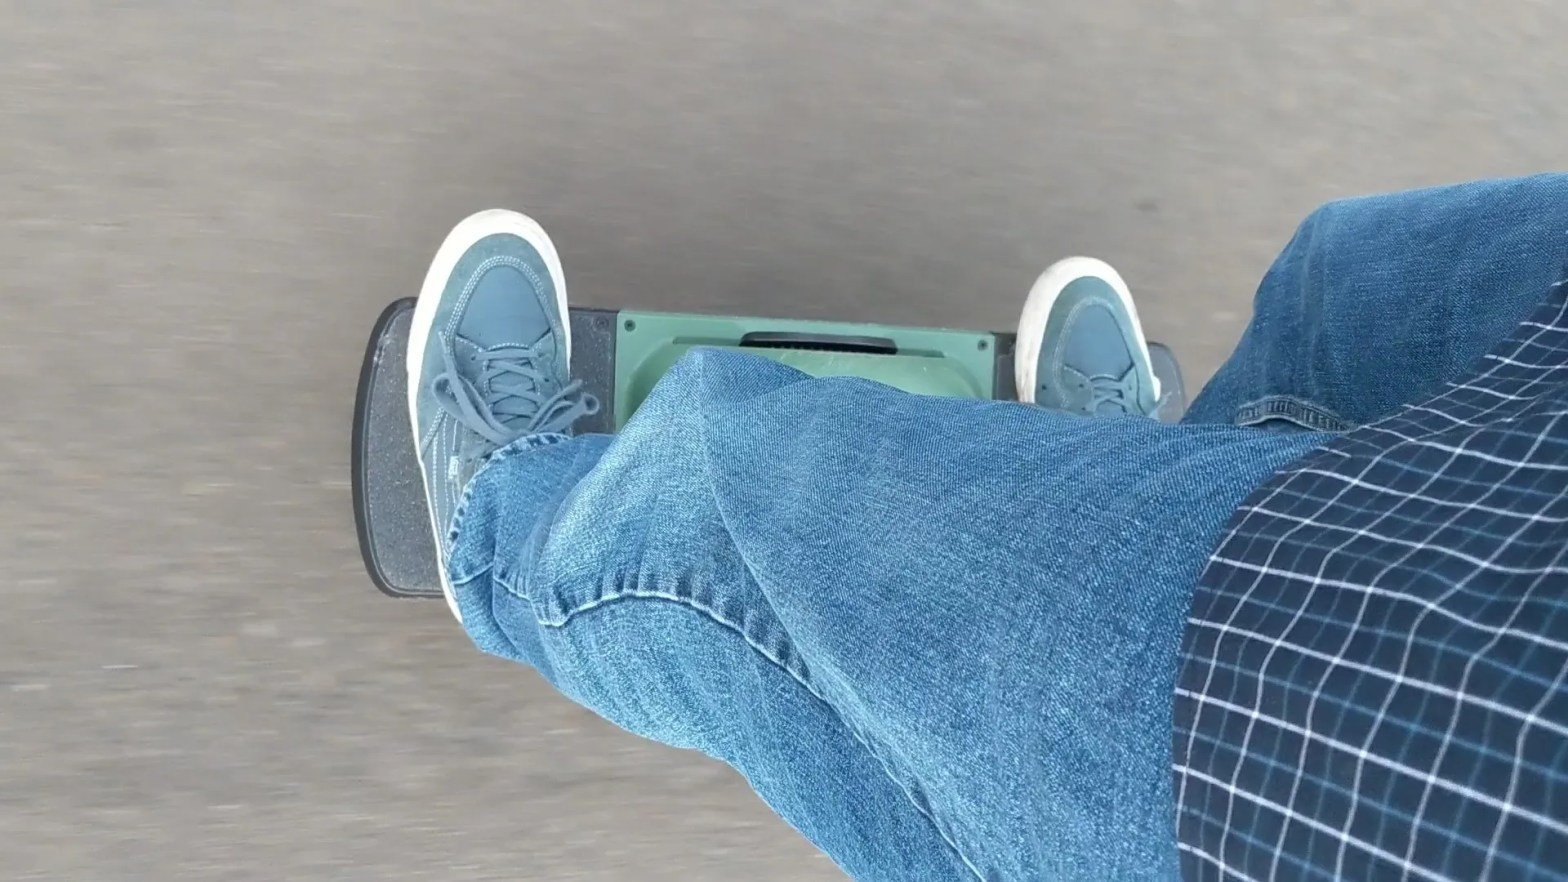 Riding the Onewheel